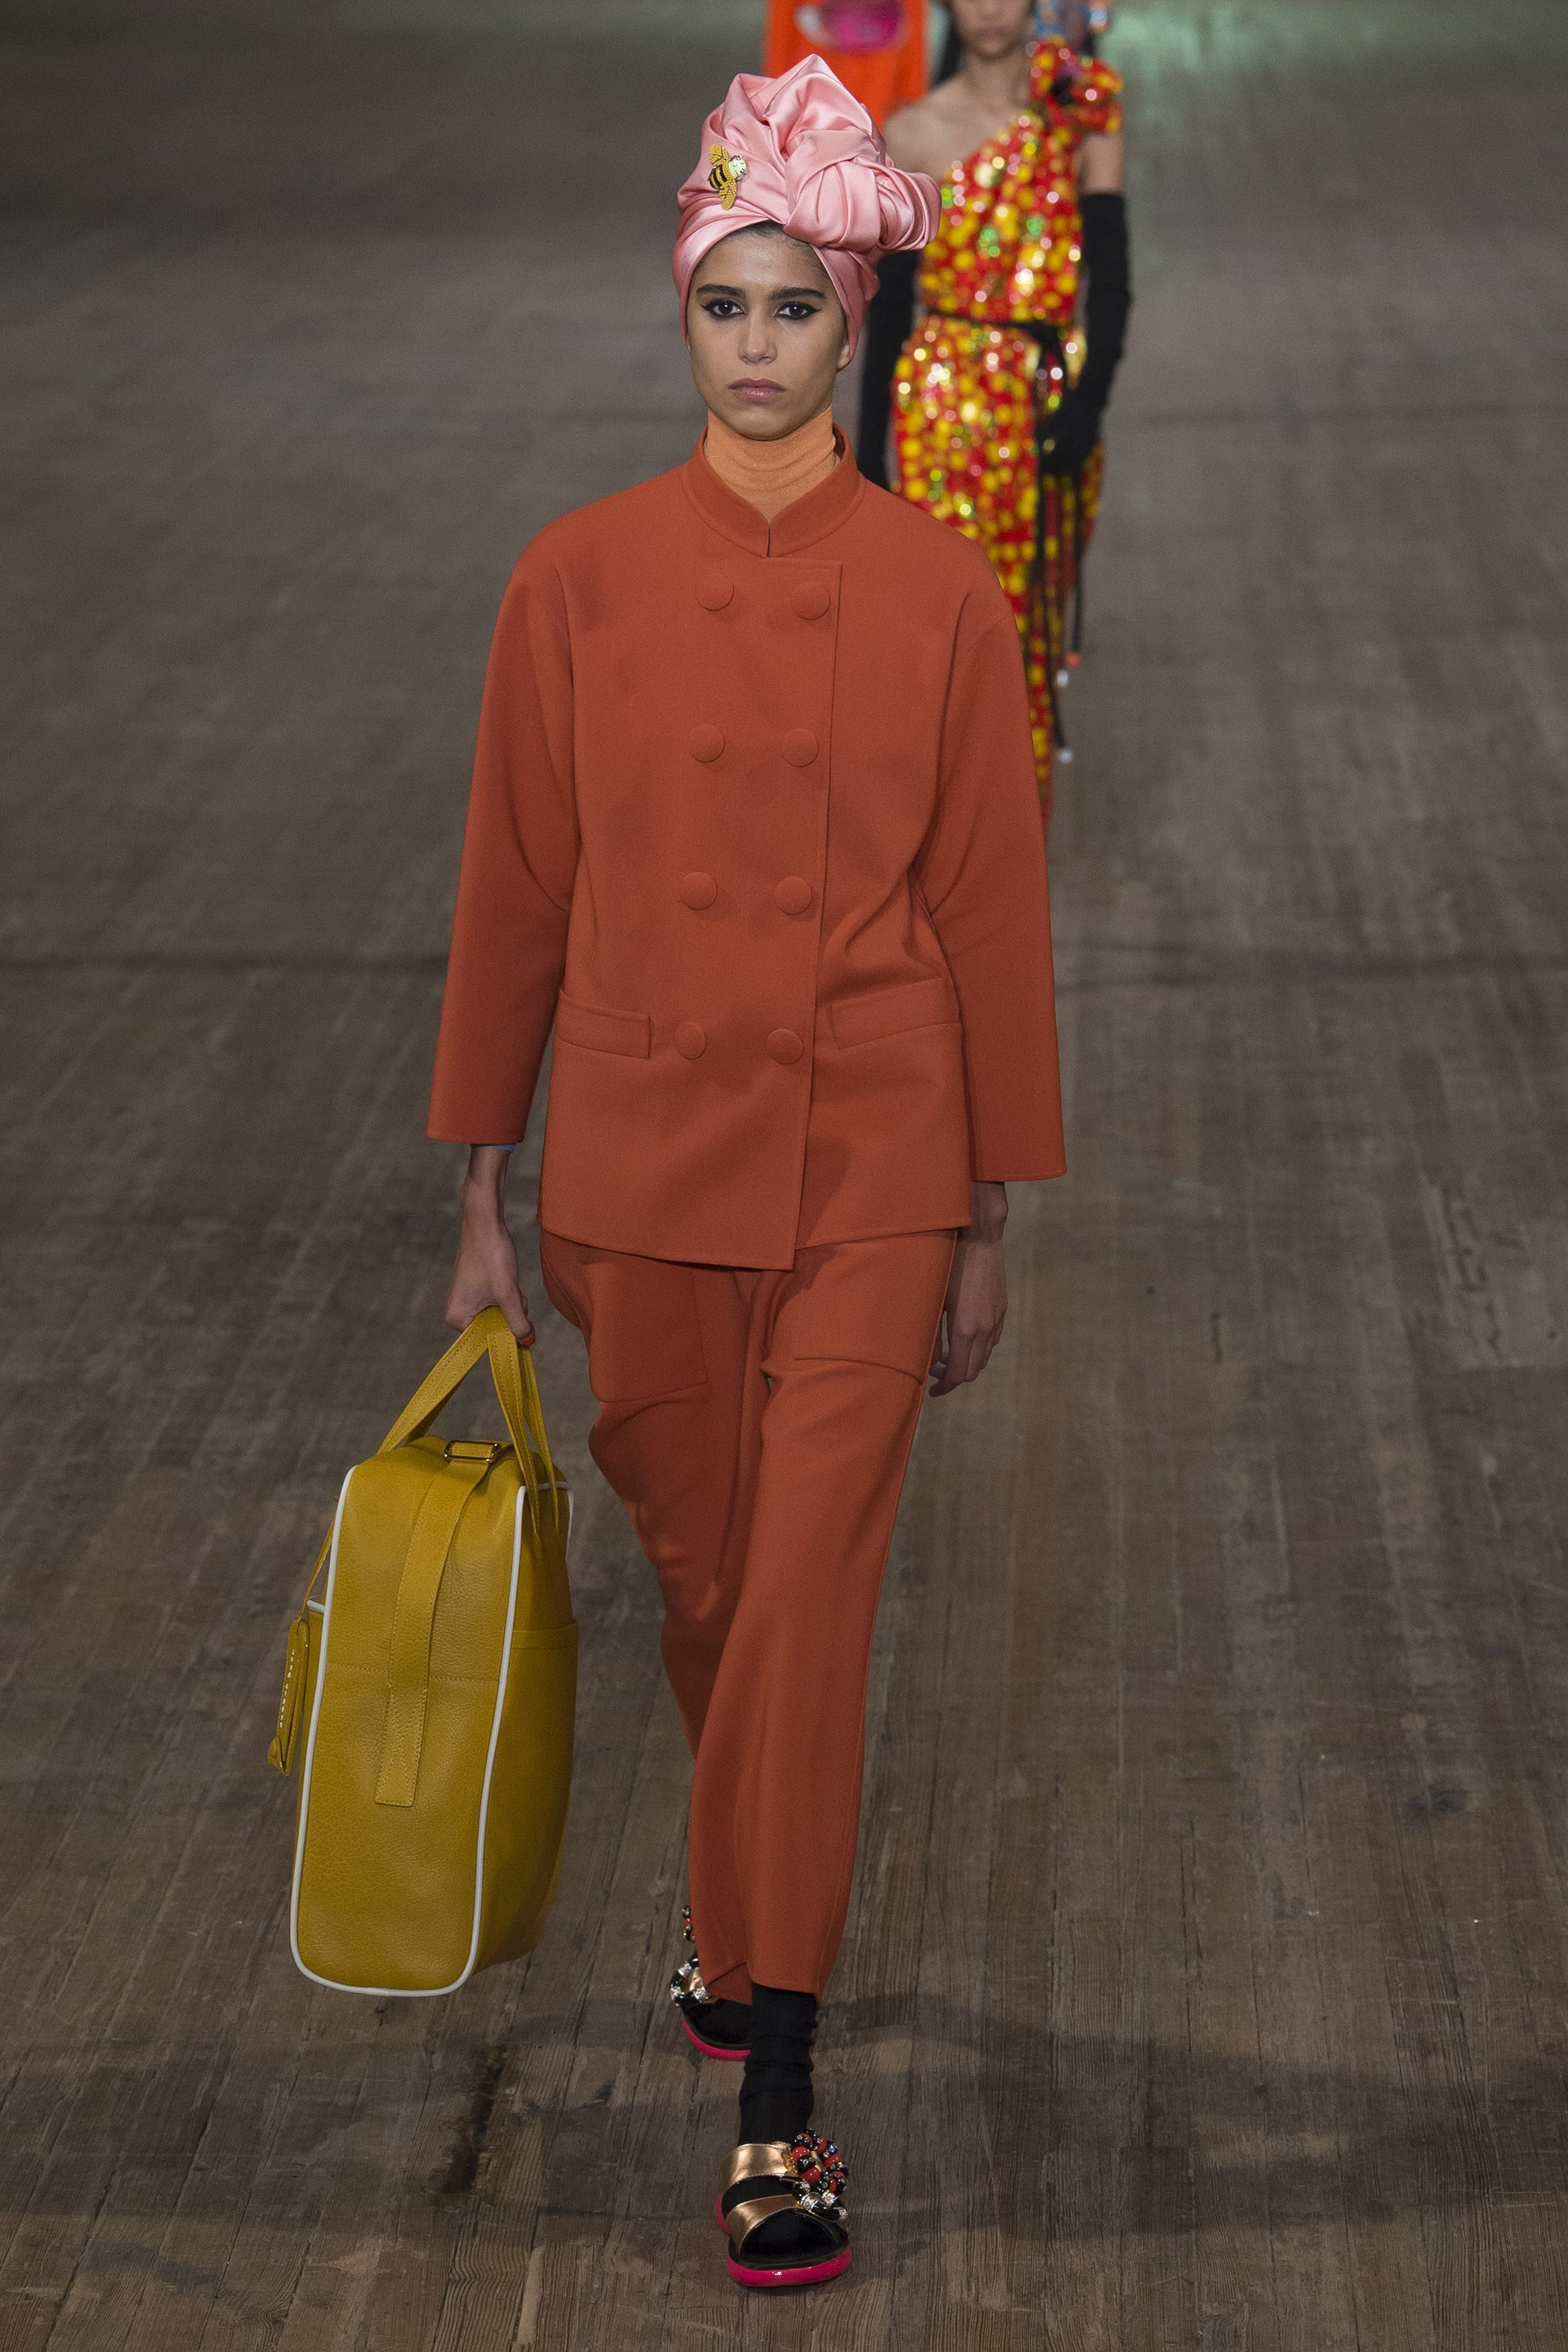 marc jacobs xuan he 2018 07